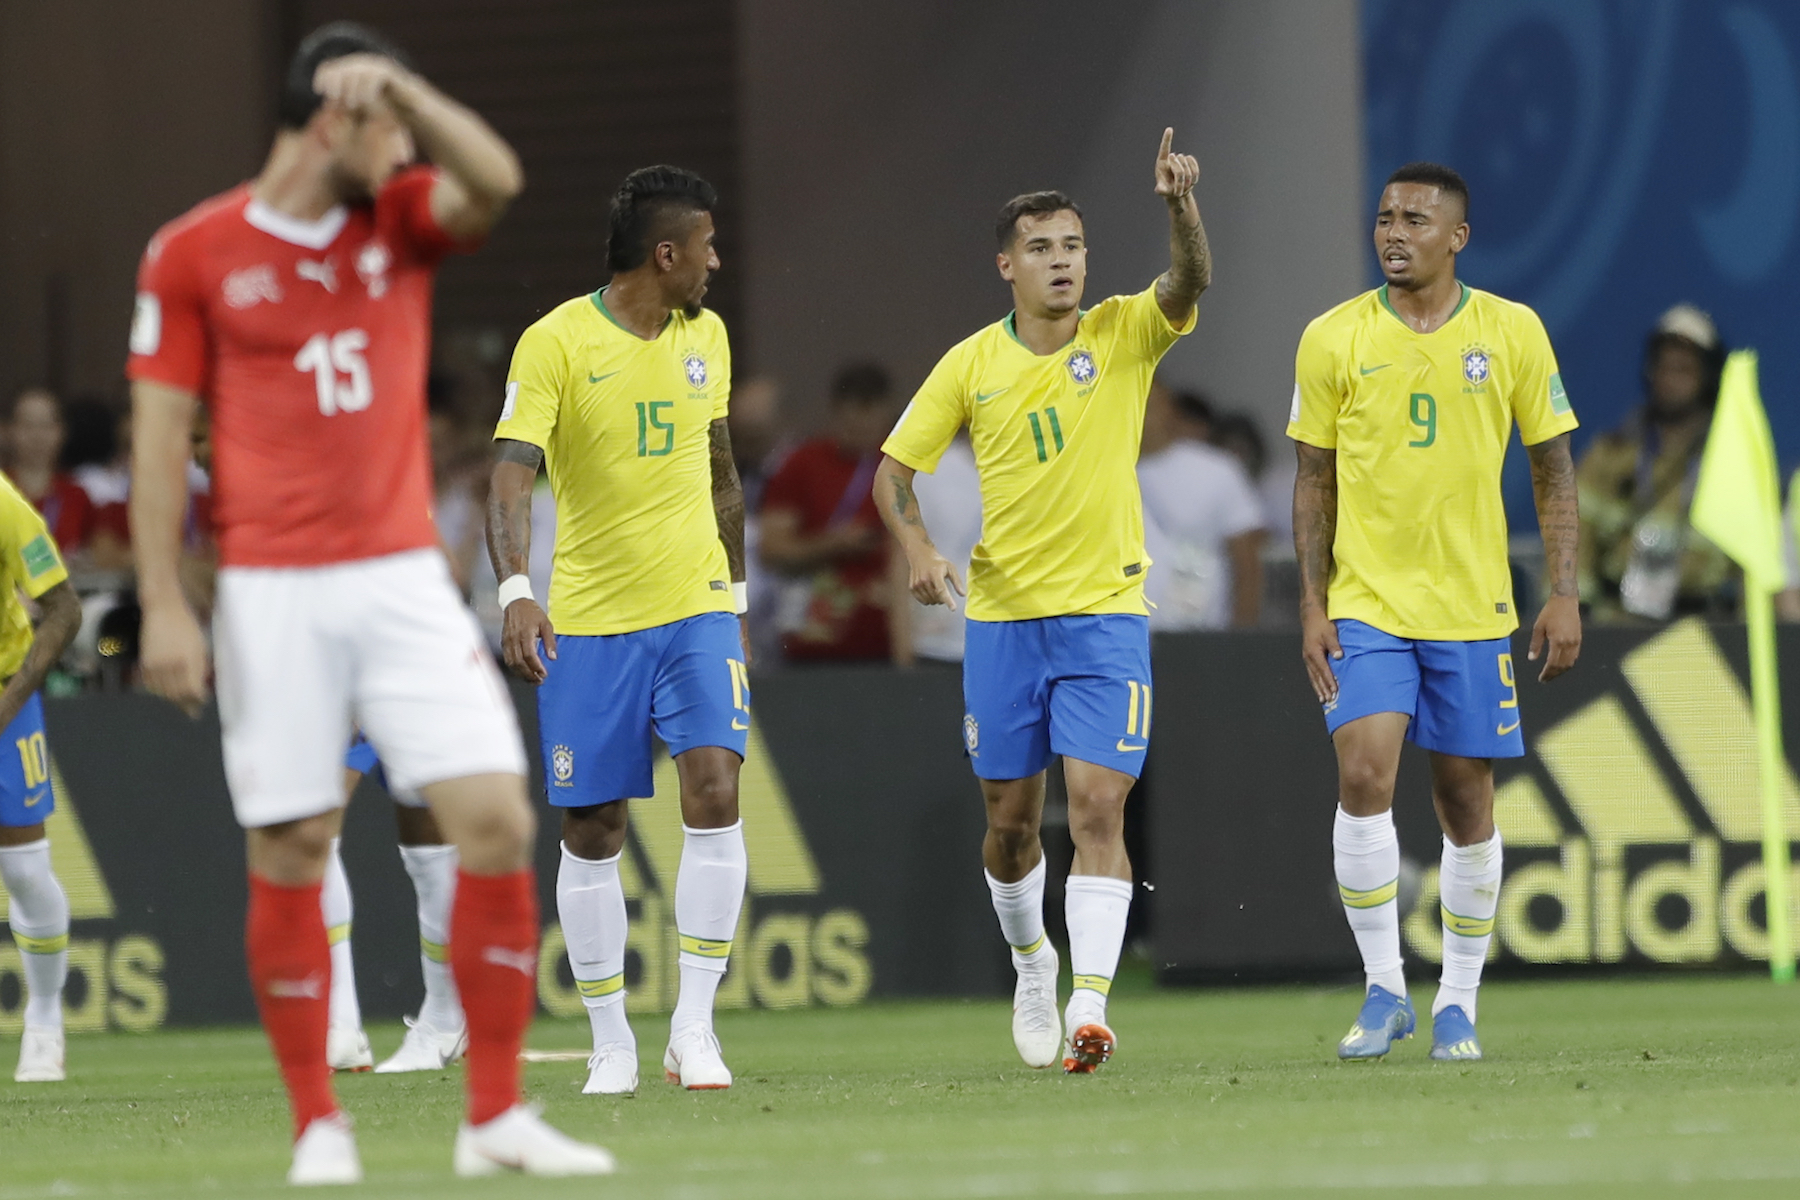 <div class='meta'><div class='origin-logo' data-origin='AP'></div><span class='caption-text' data-credit='AP Photo/Andre Penner'>Brazil's Philippe Coutinho, second from right, celebrates scoring his side first goal against Switzerland during a group E match at the 2018 soccer World Cup in the Rostov Arena.</span></div>